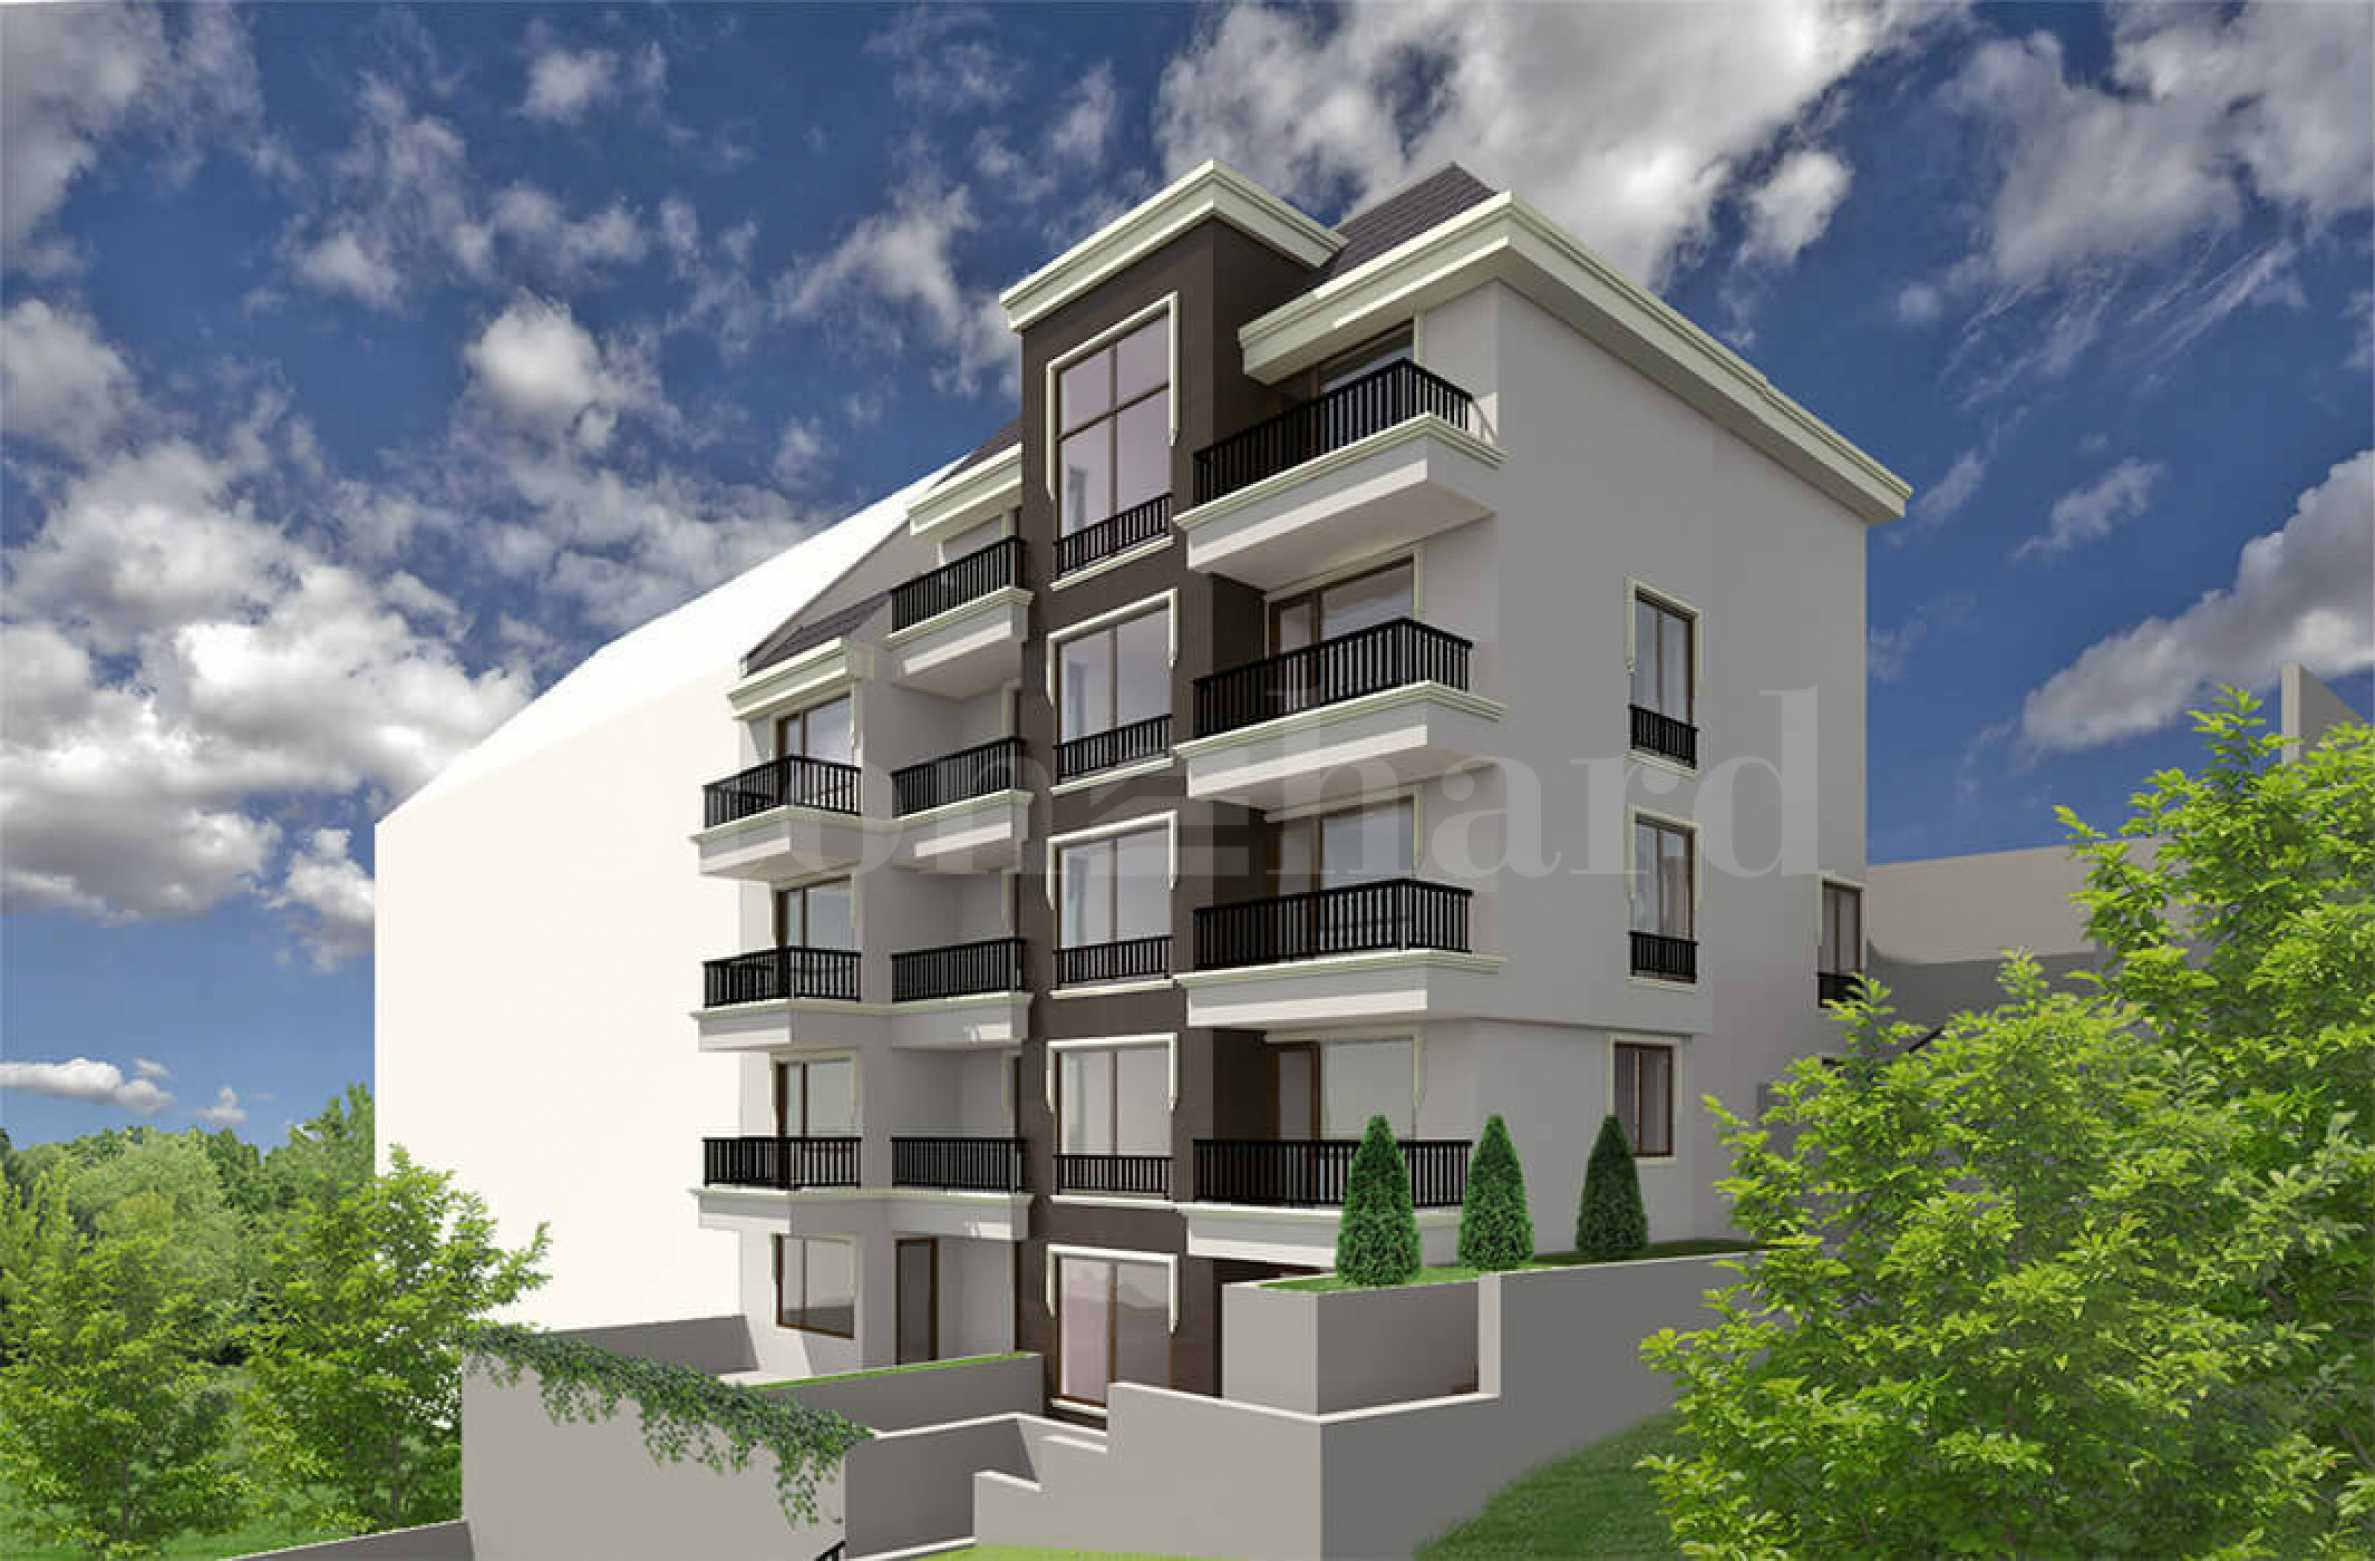 Excellent residential building in Evksinograd area near Varna1 - Stonehard